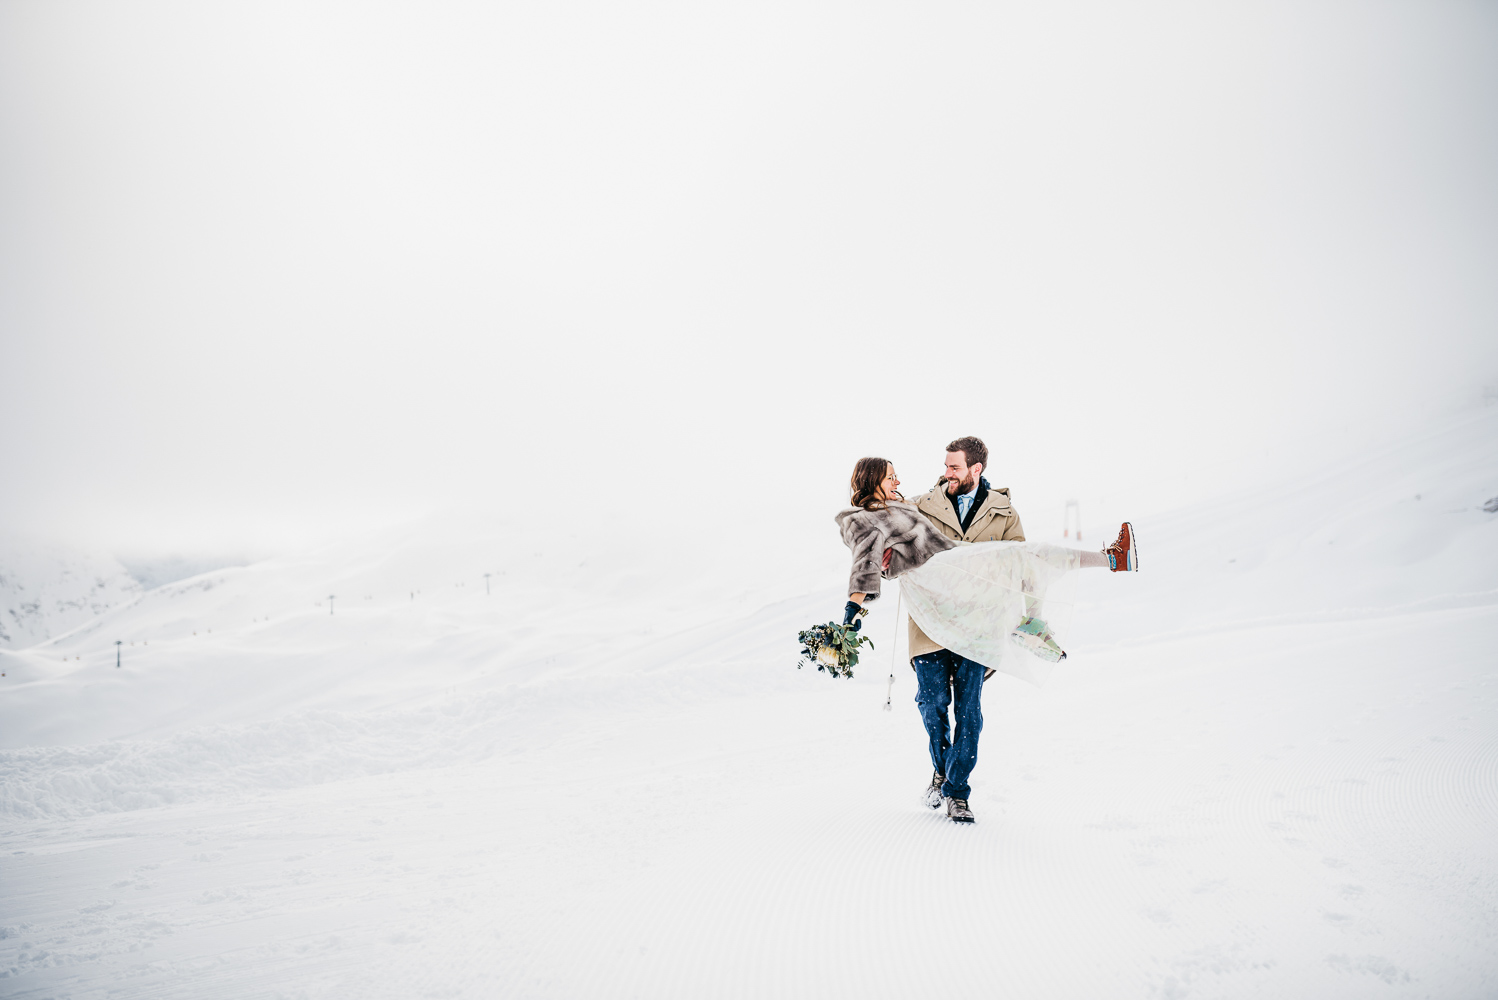 Winter wedding on Germany's Highest Mountain by Aneta Lehotska